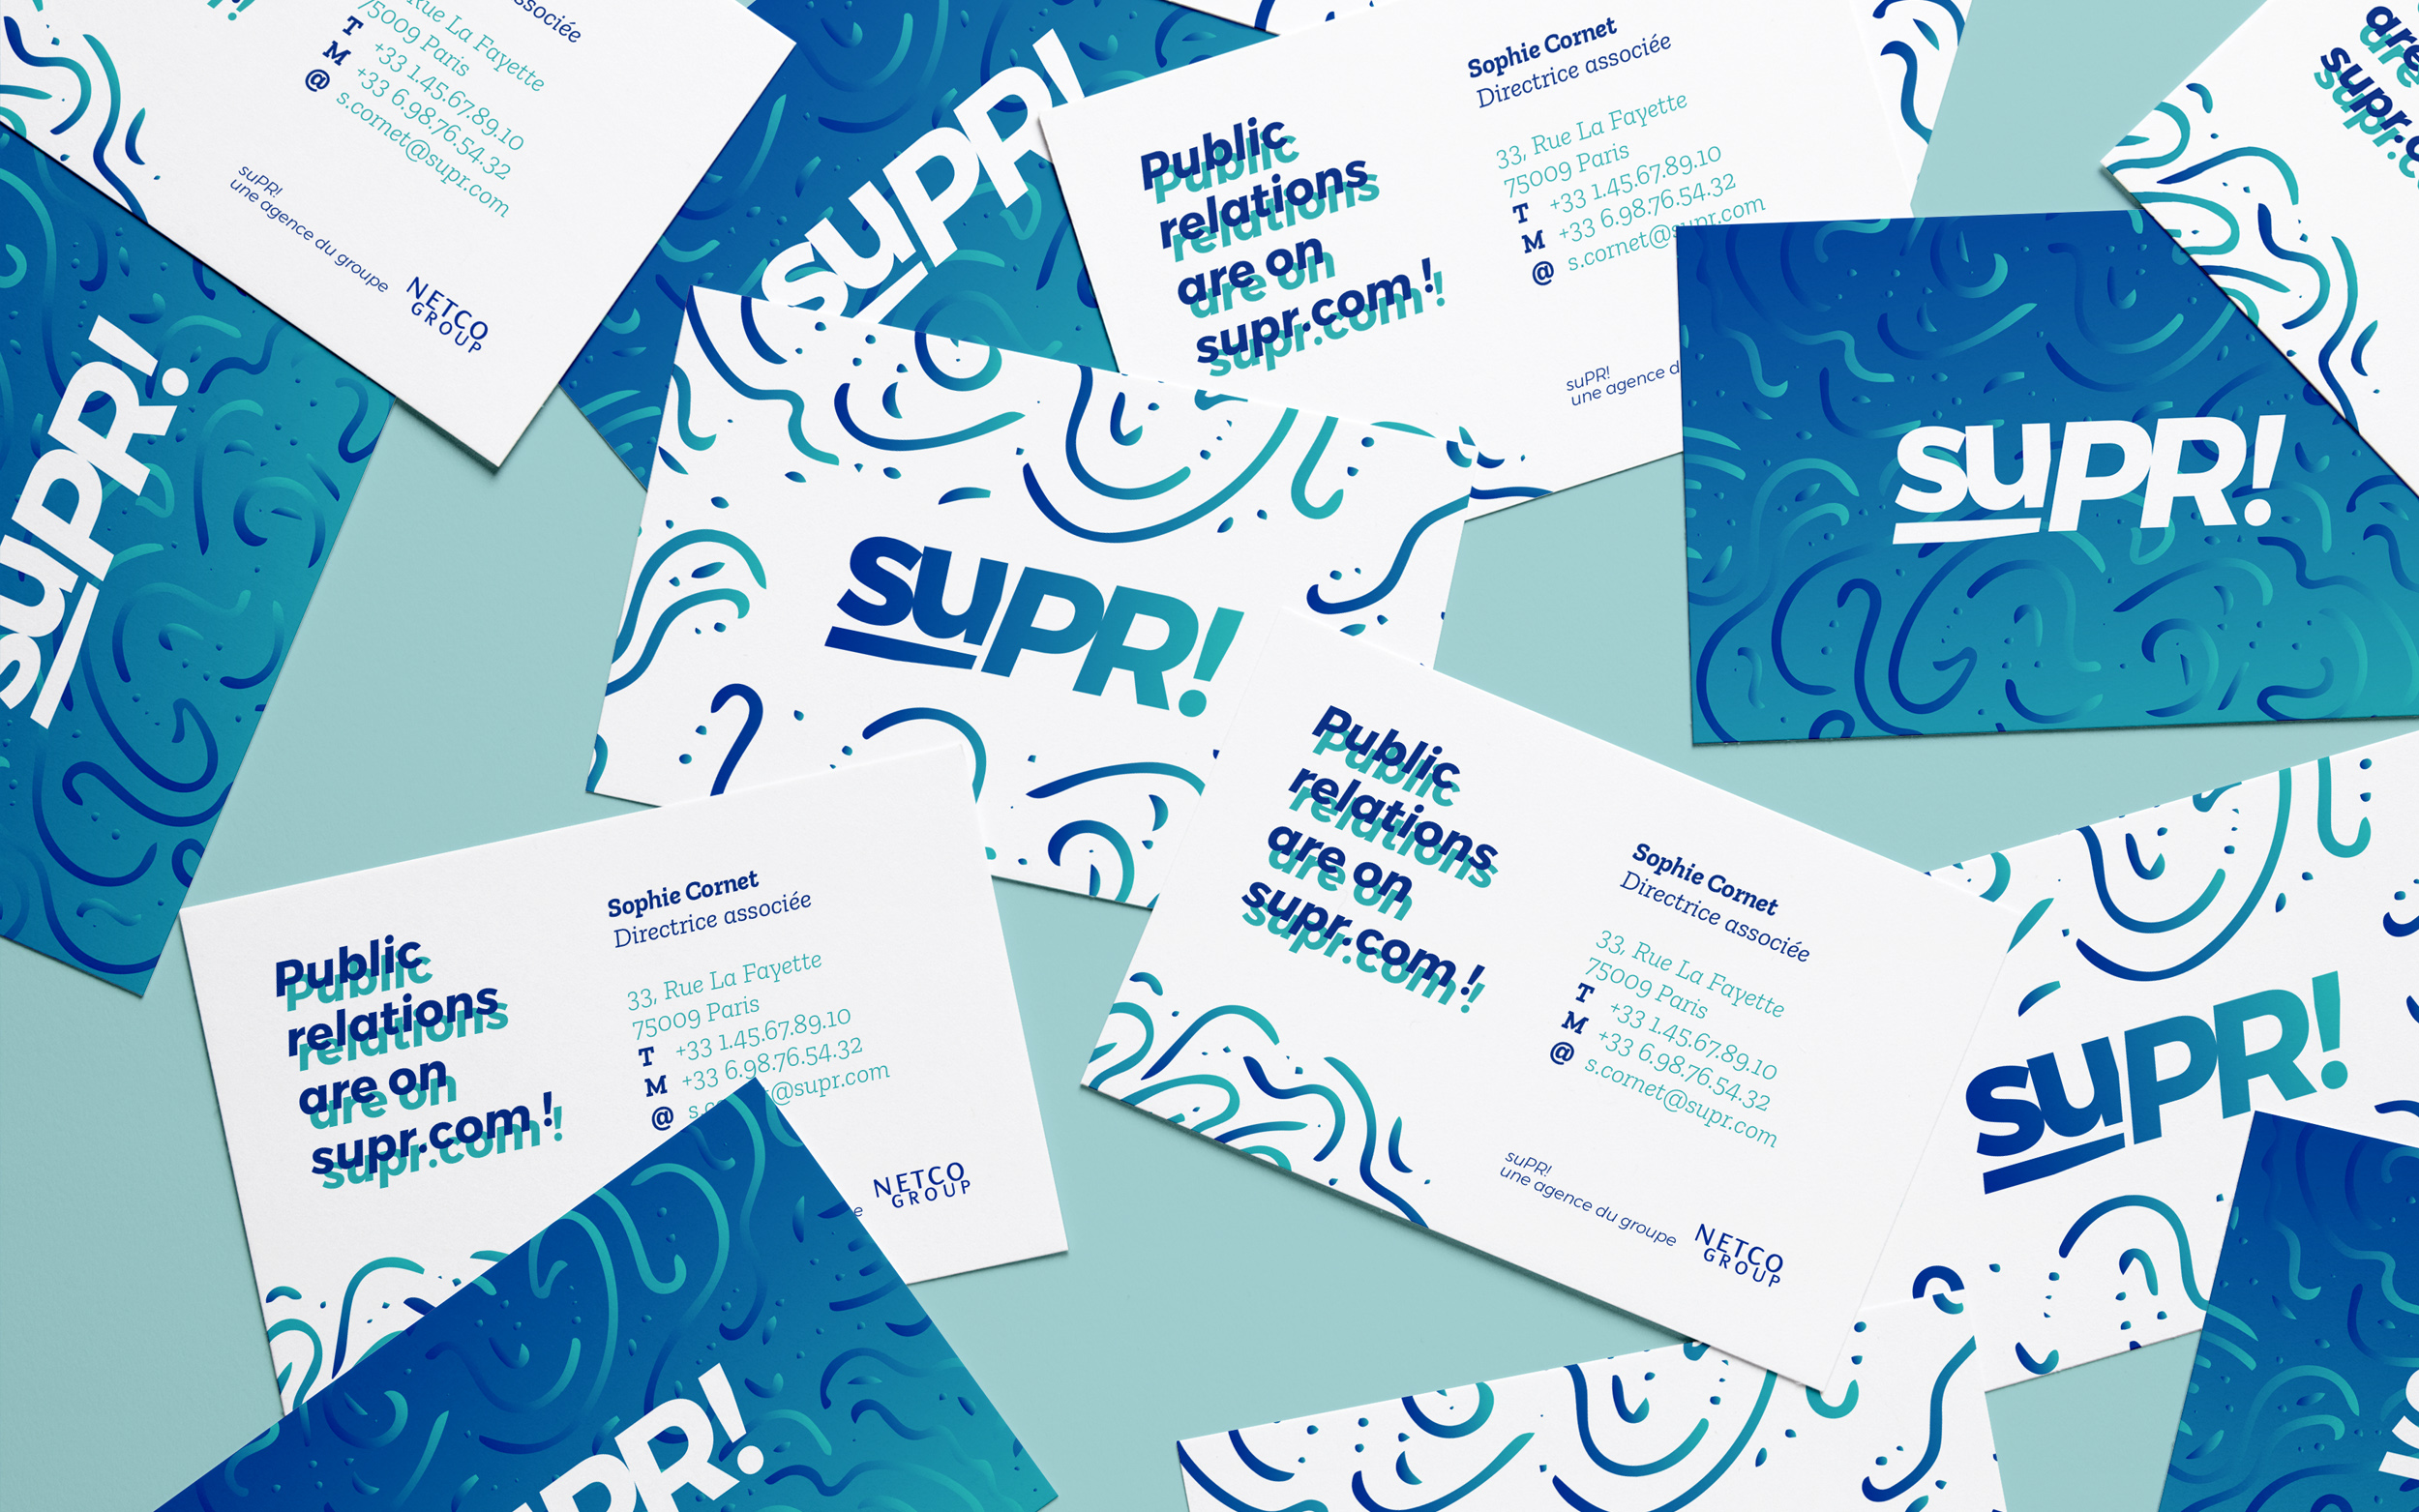 supr-logo-design-paris-03.jpg